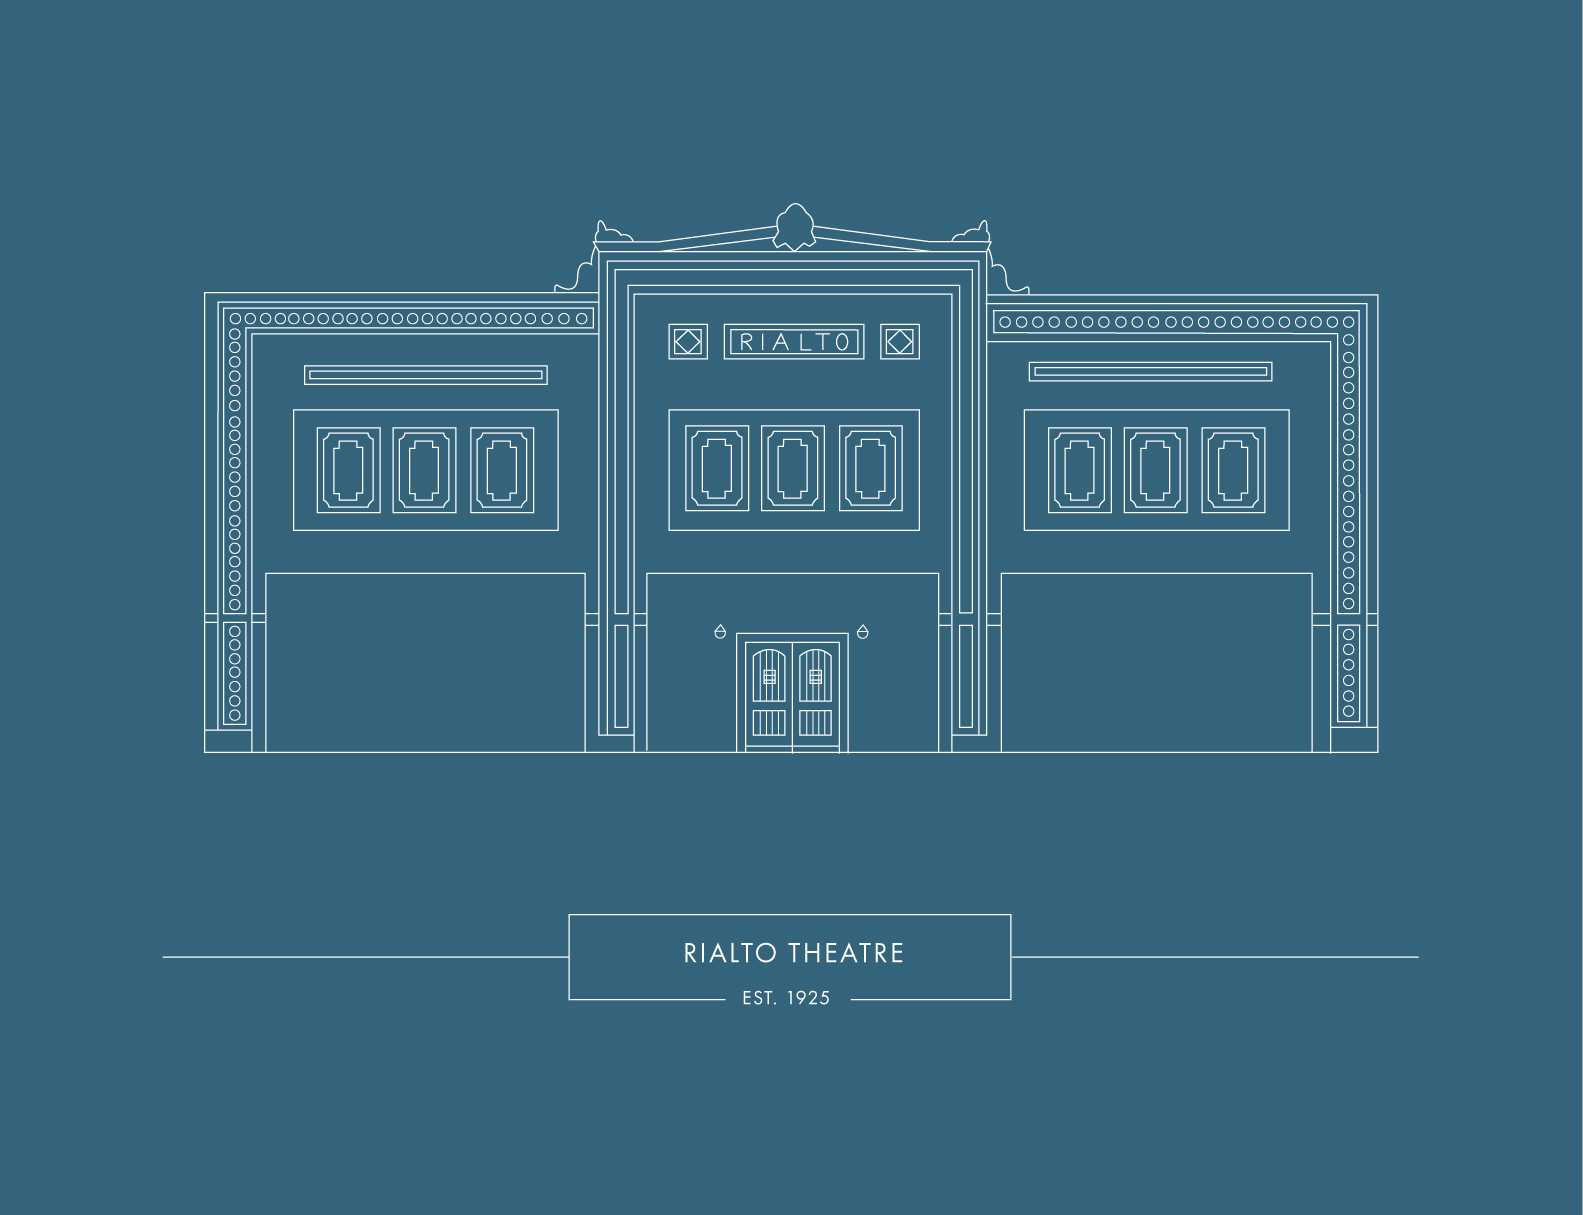 Line drawing of the historic Rialto Theatre